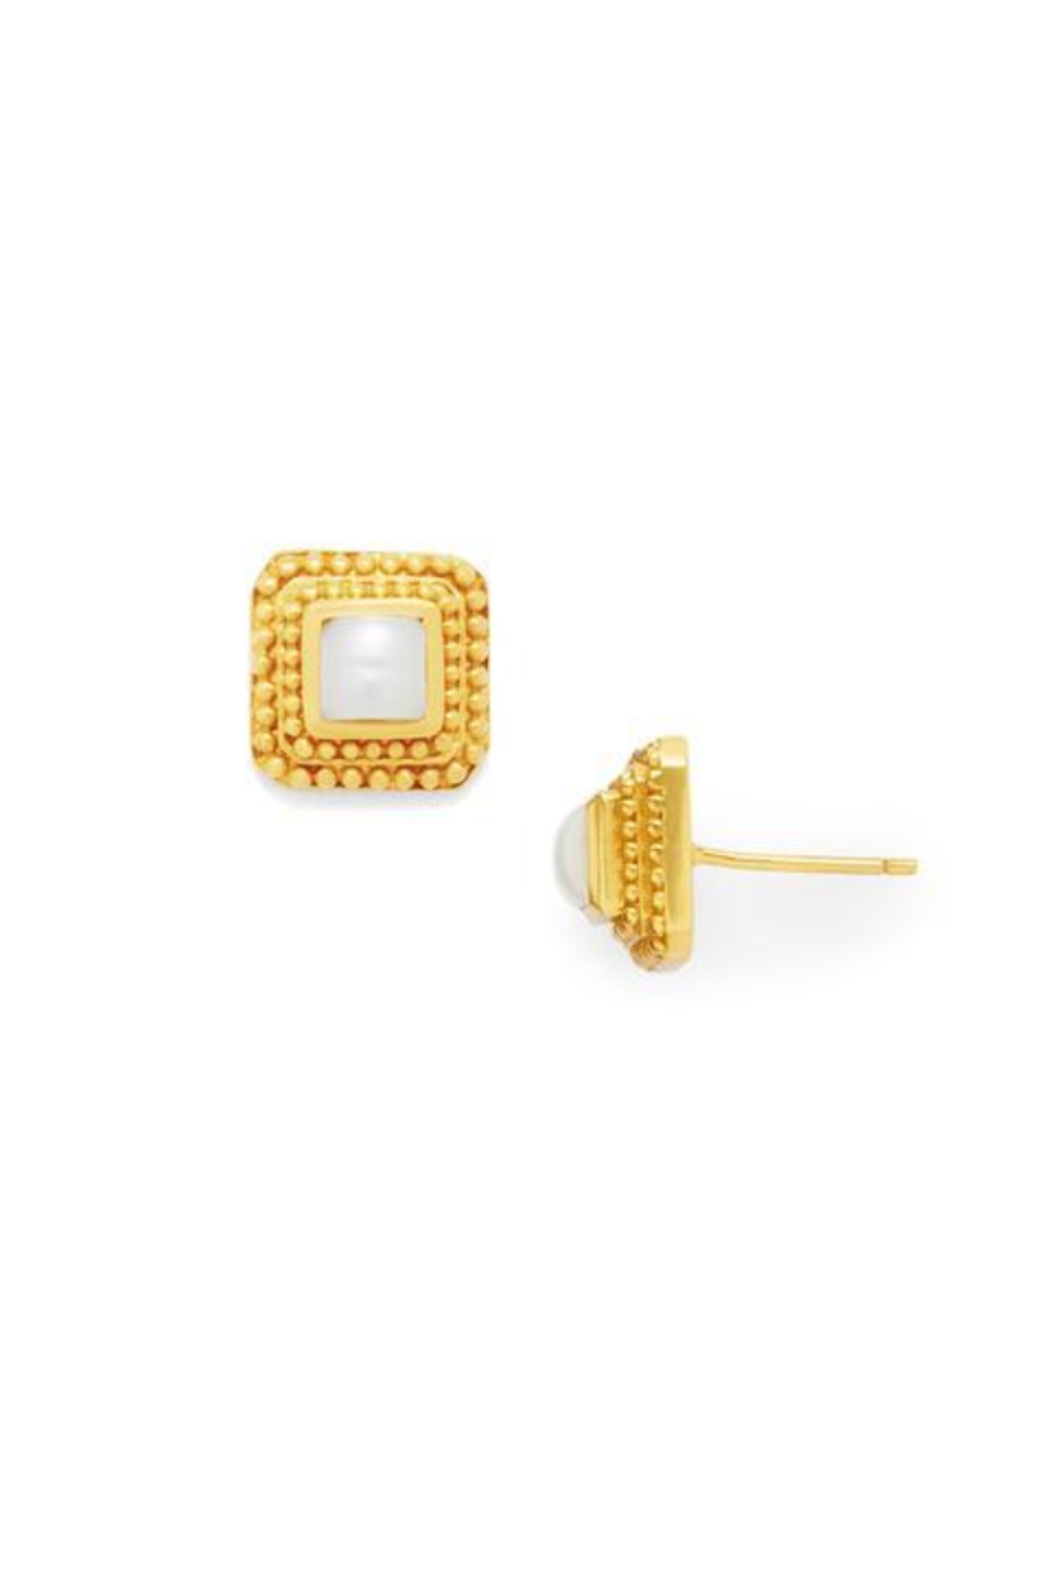 The Birds Nest LUXOR STUDS-MOTHER OF PEARL - Main Image